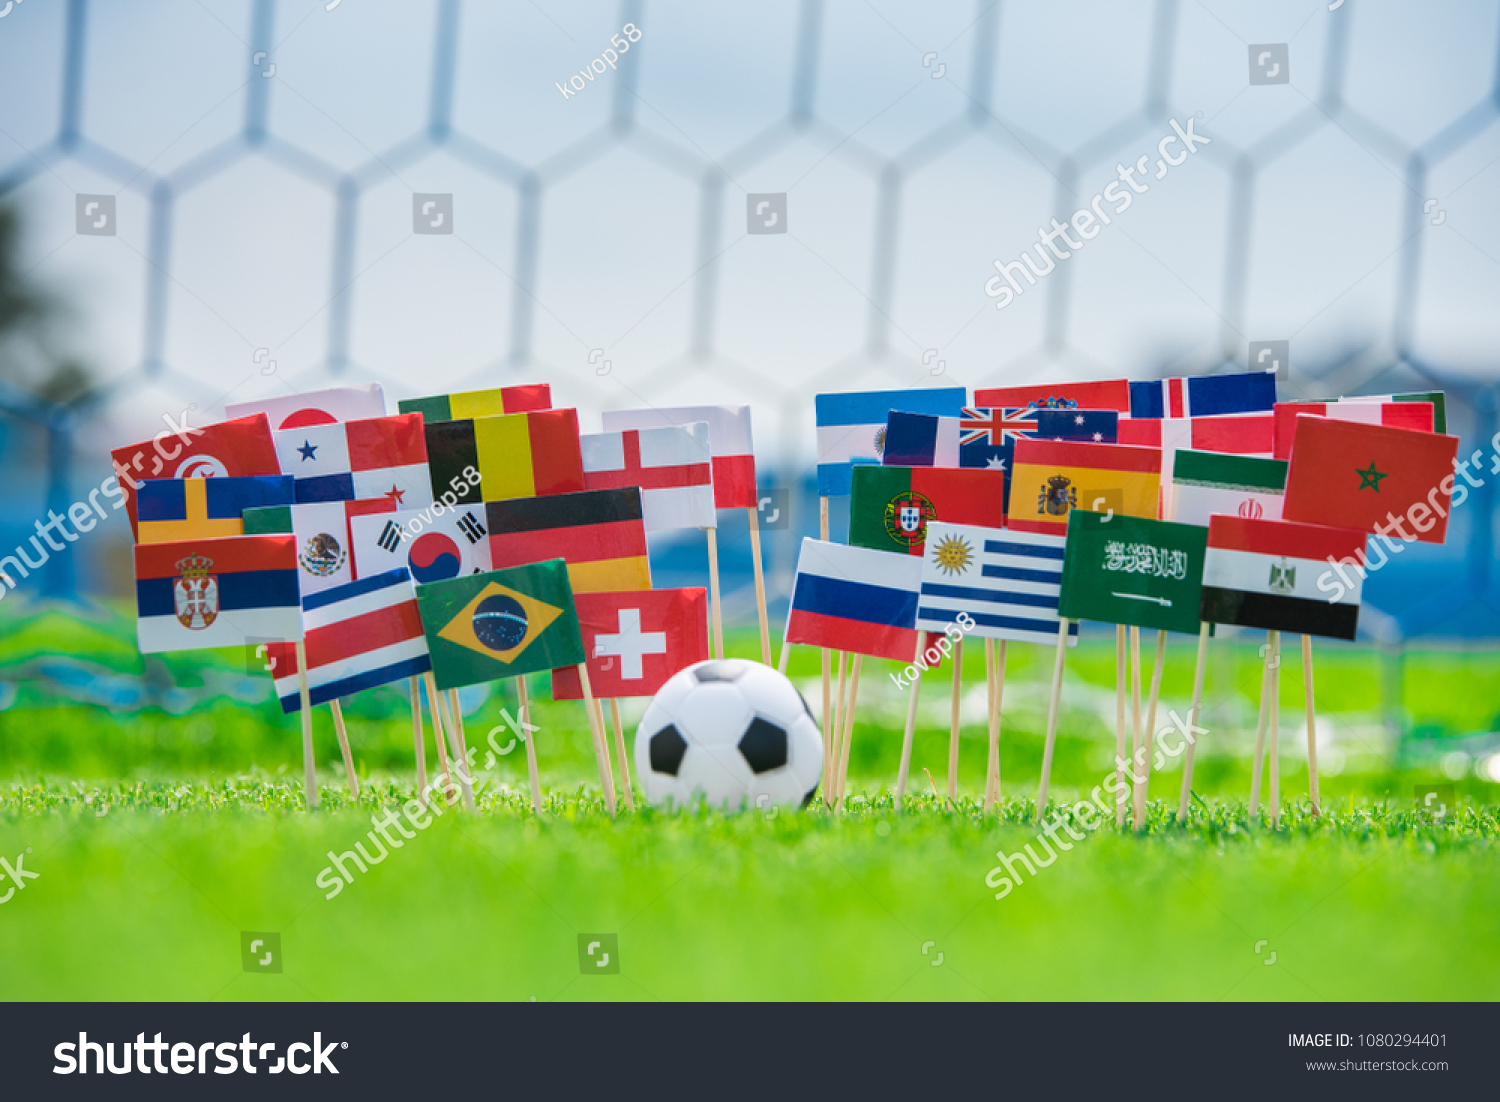 MOSCOW, RUSSIA - APRIL, 24, 2018: All nations flag of FIFA Football World Cup 2018 in Russia. Fans support concept photo. #1080294401